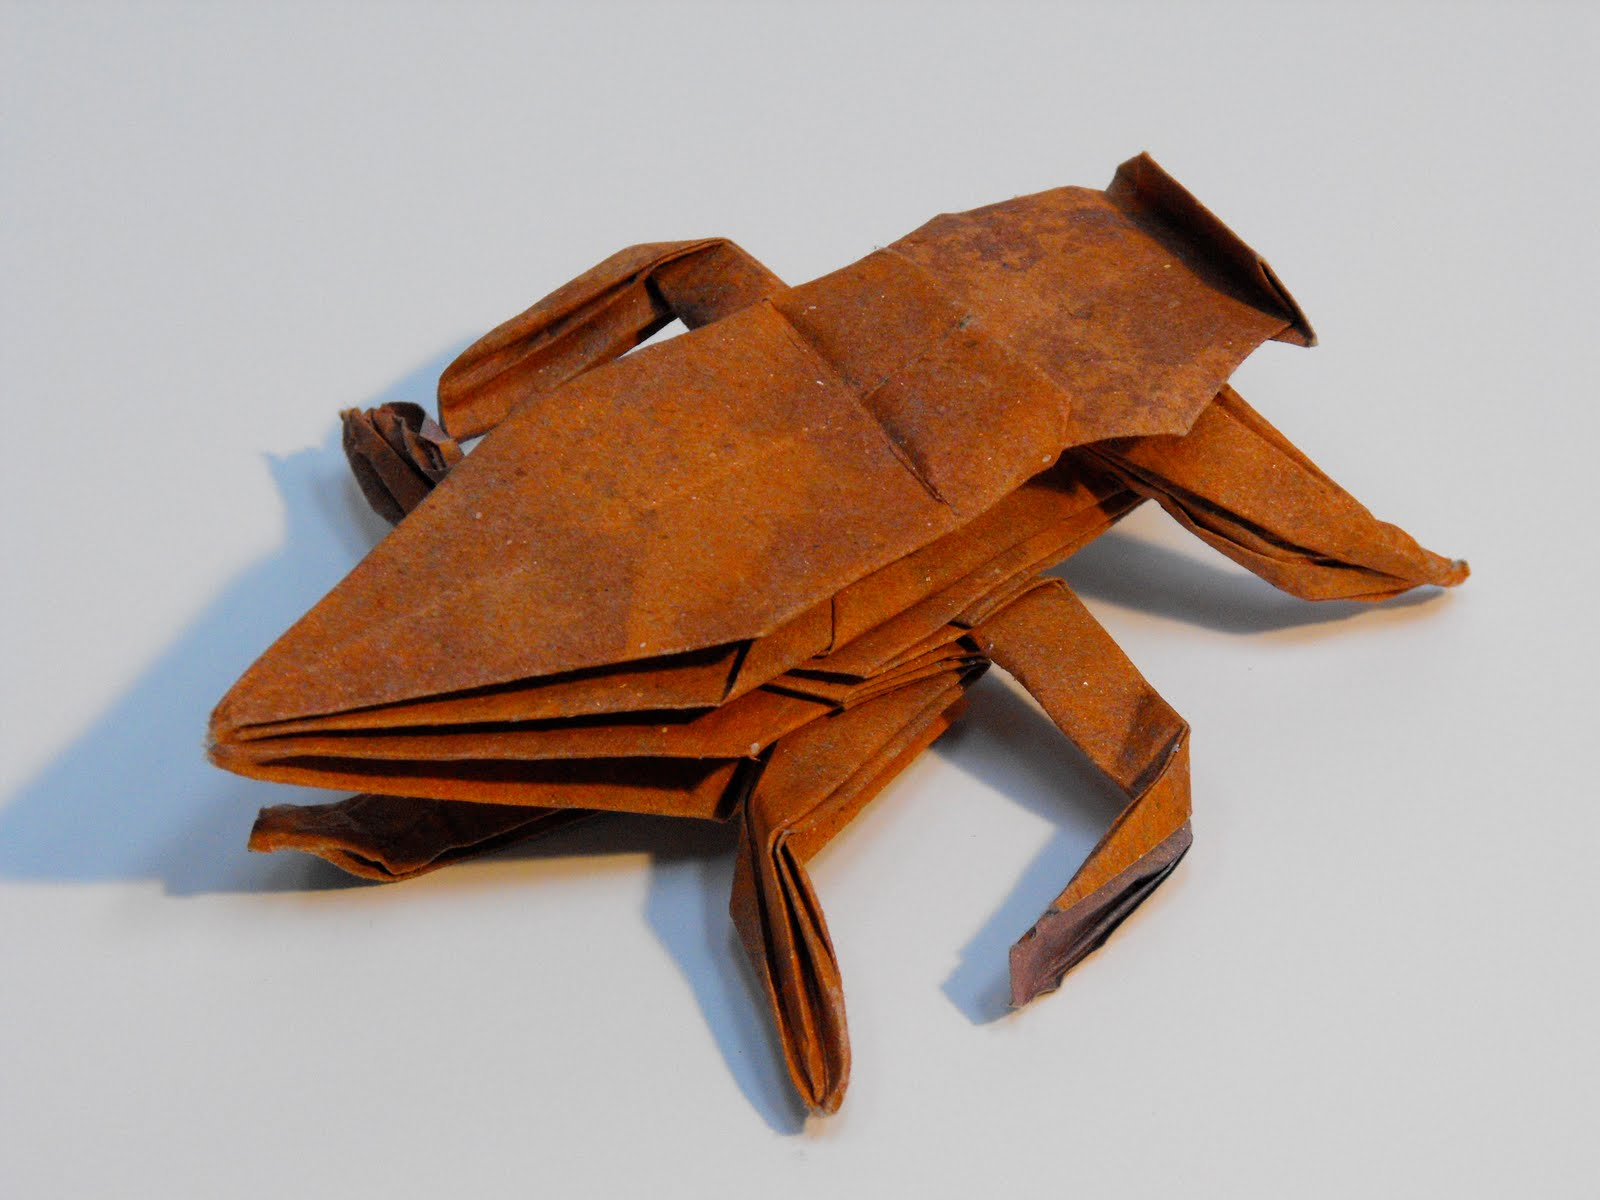 origami gissendanner: Origami Insects and Such - photo#14